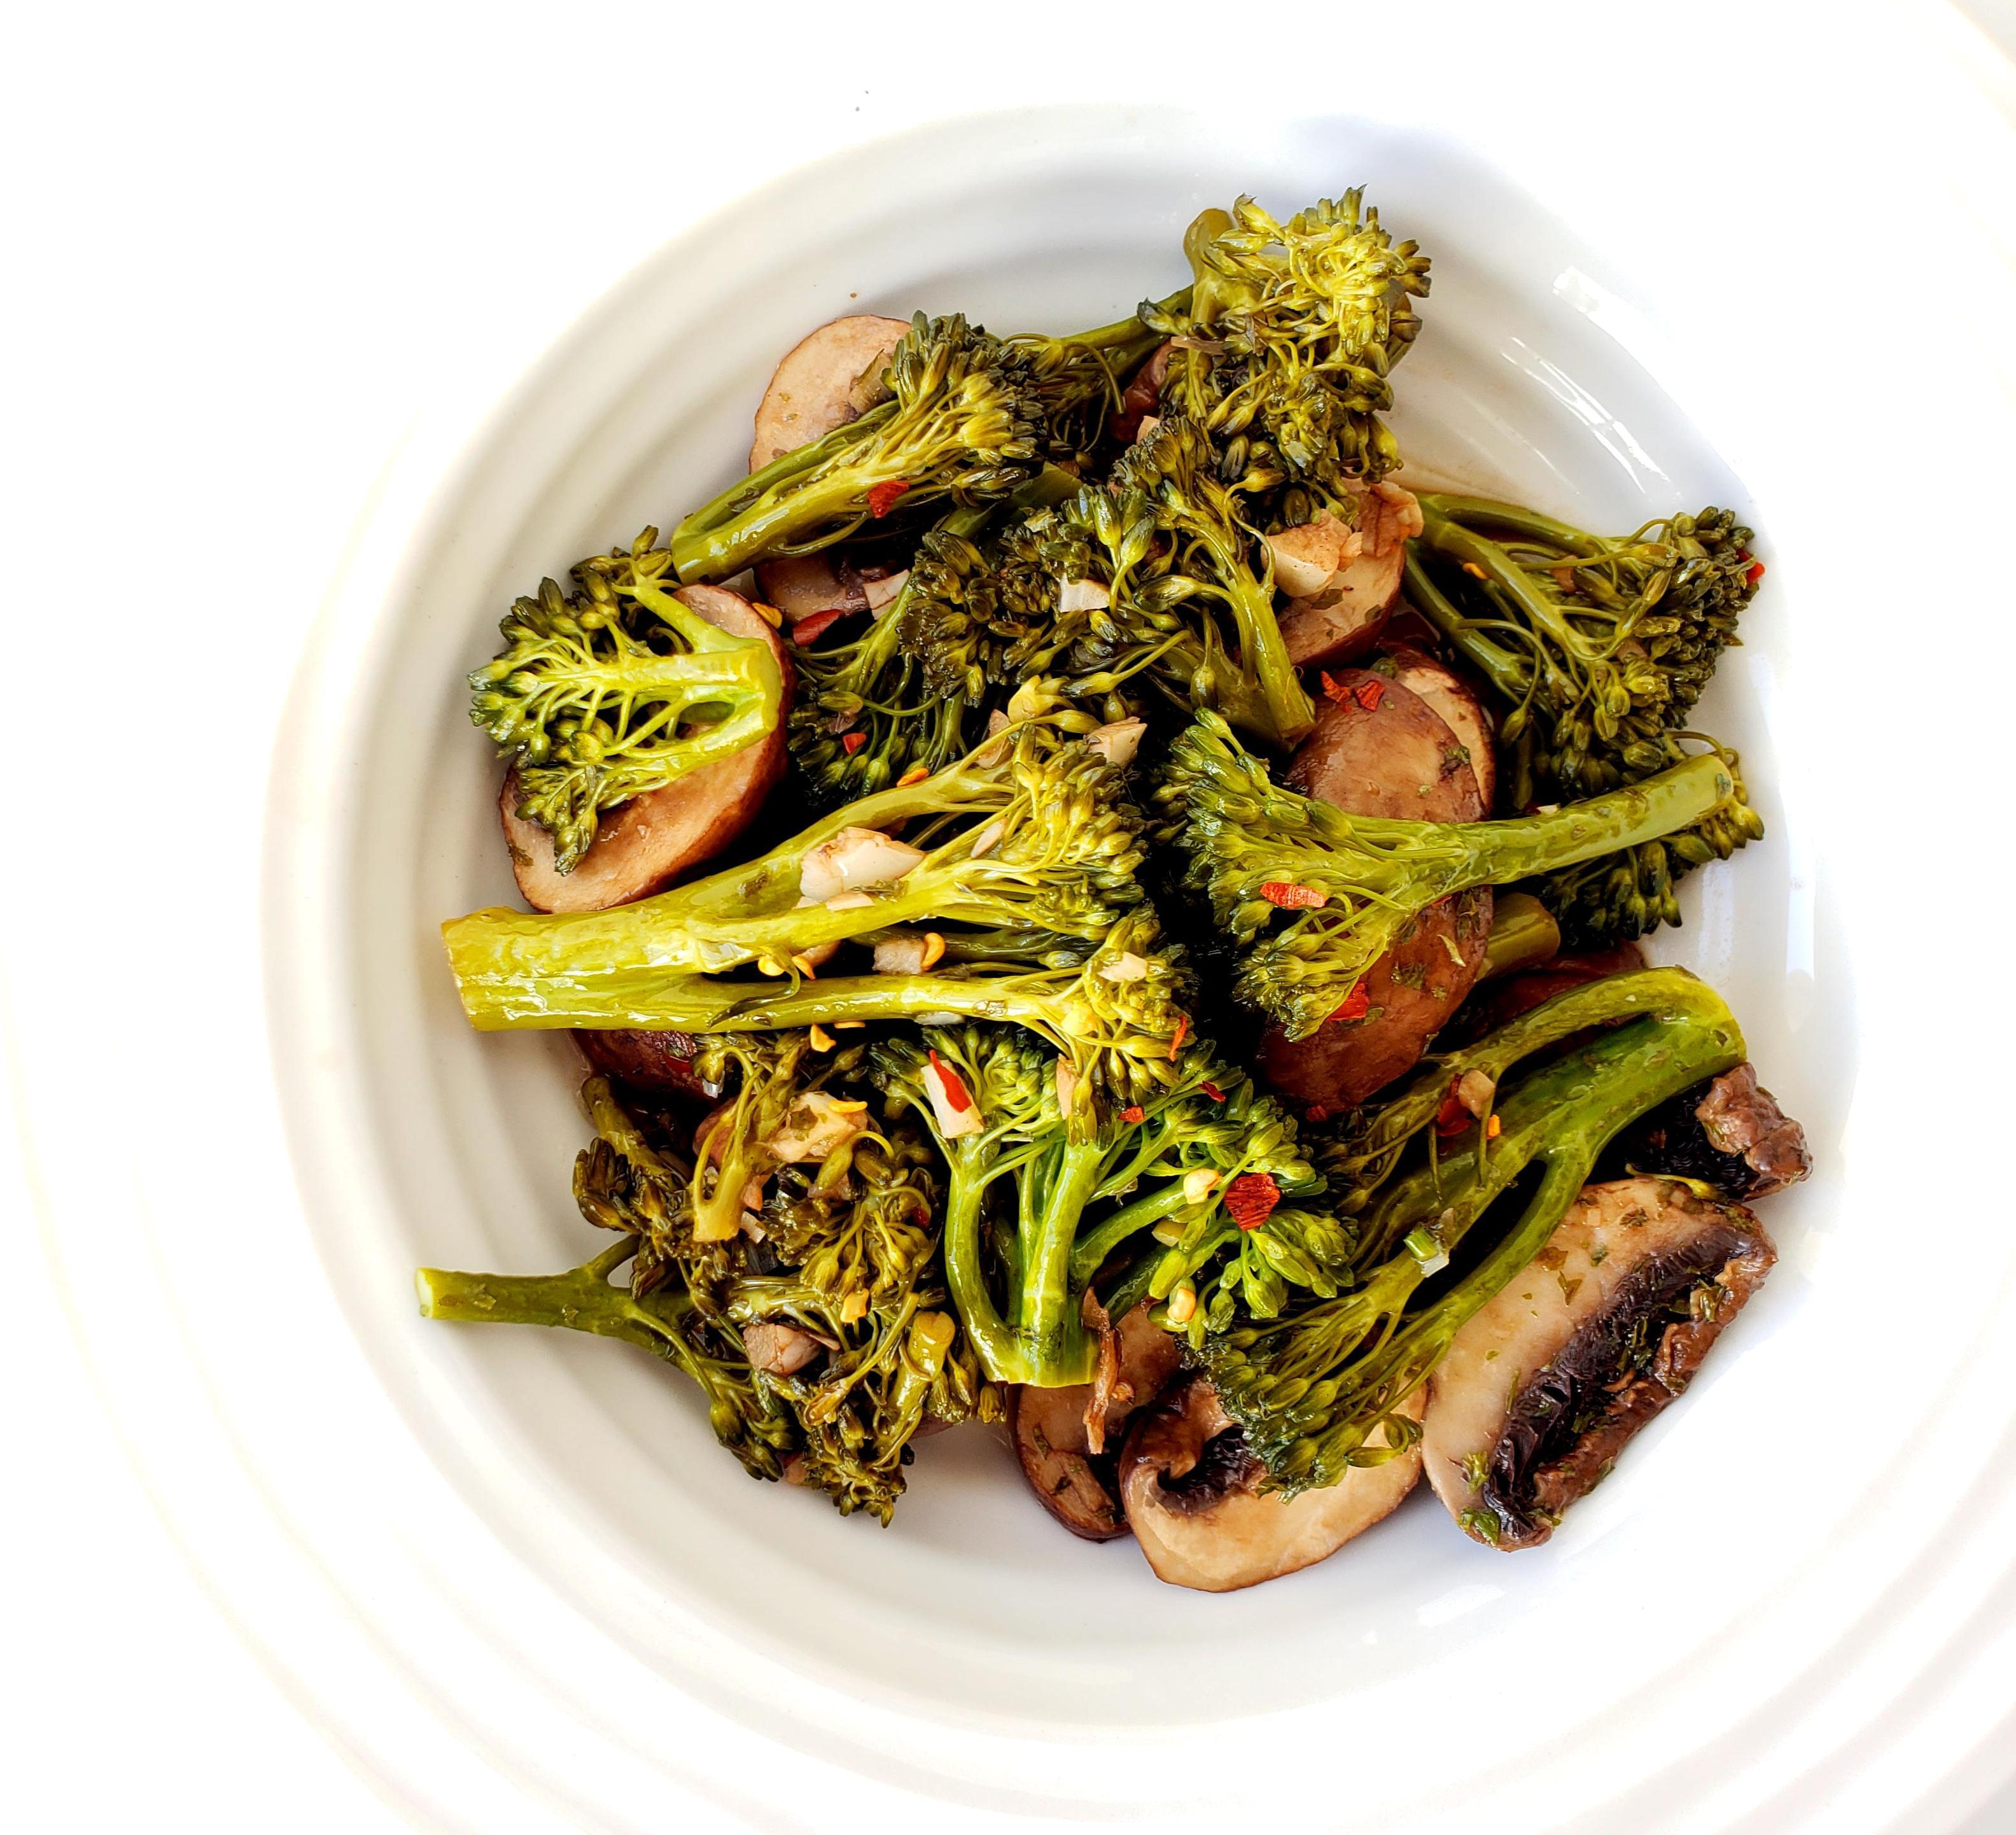 Bowl of balsamic broccolini and mushrooms with red pepper flakes